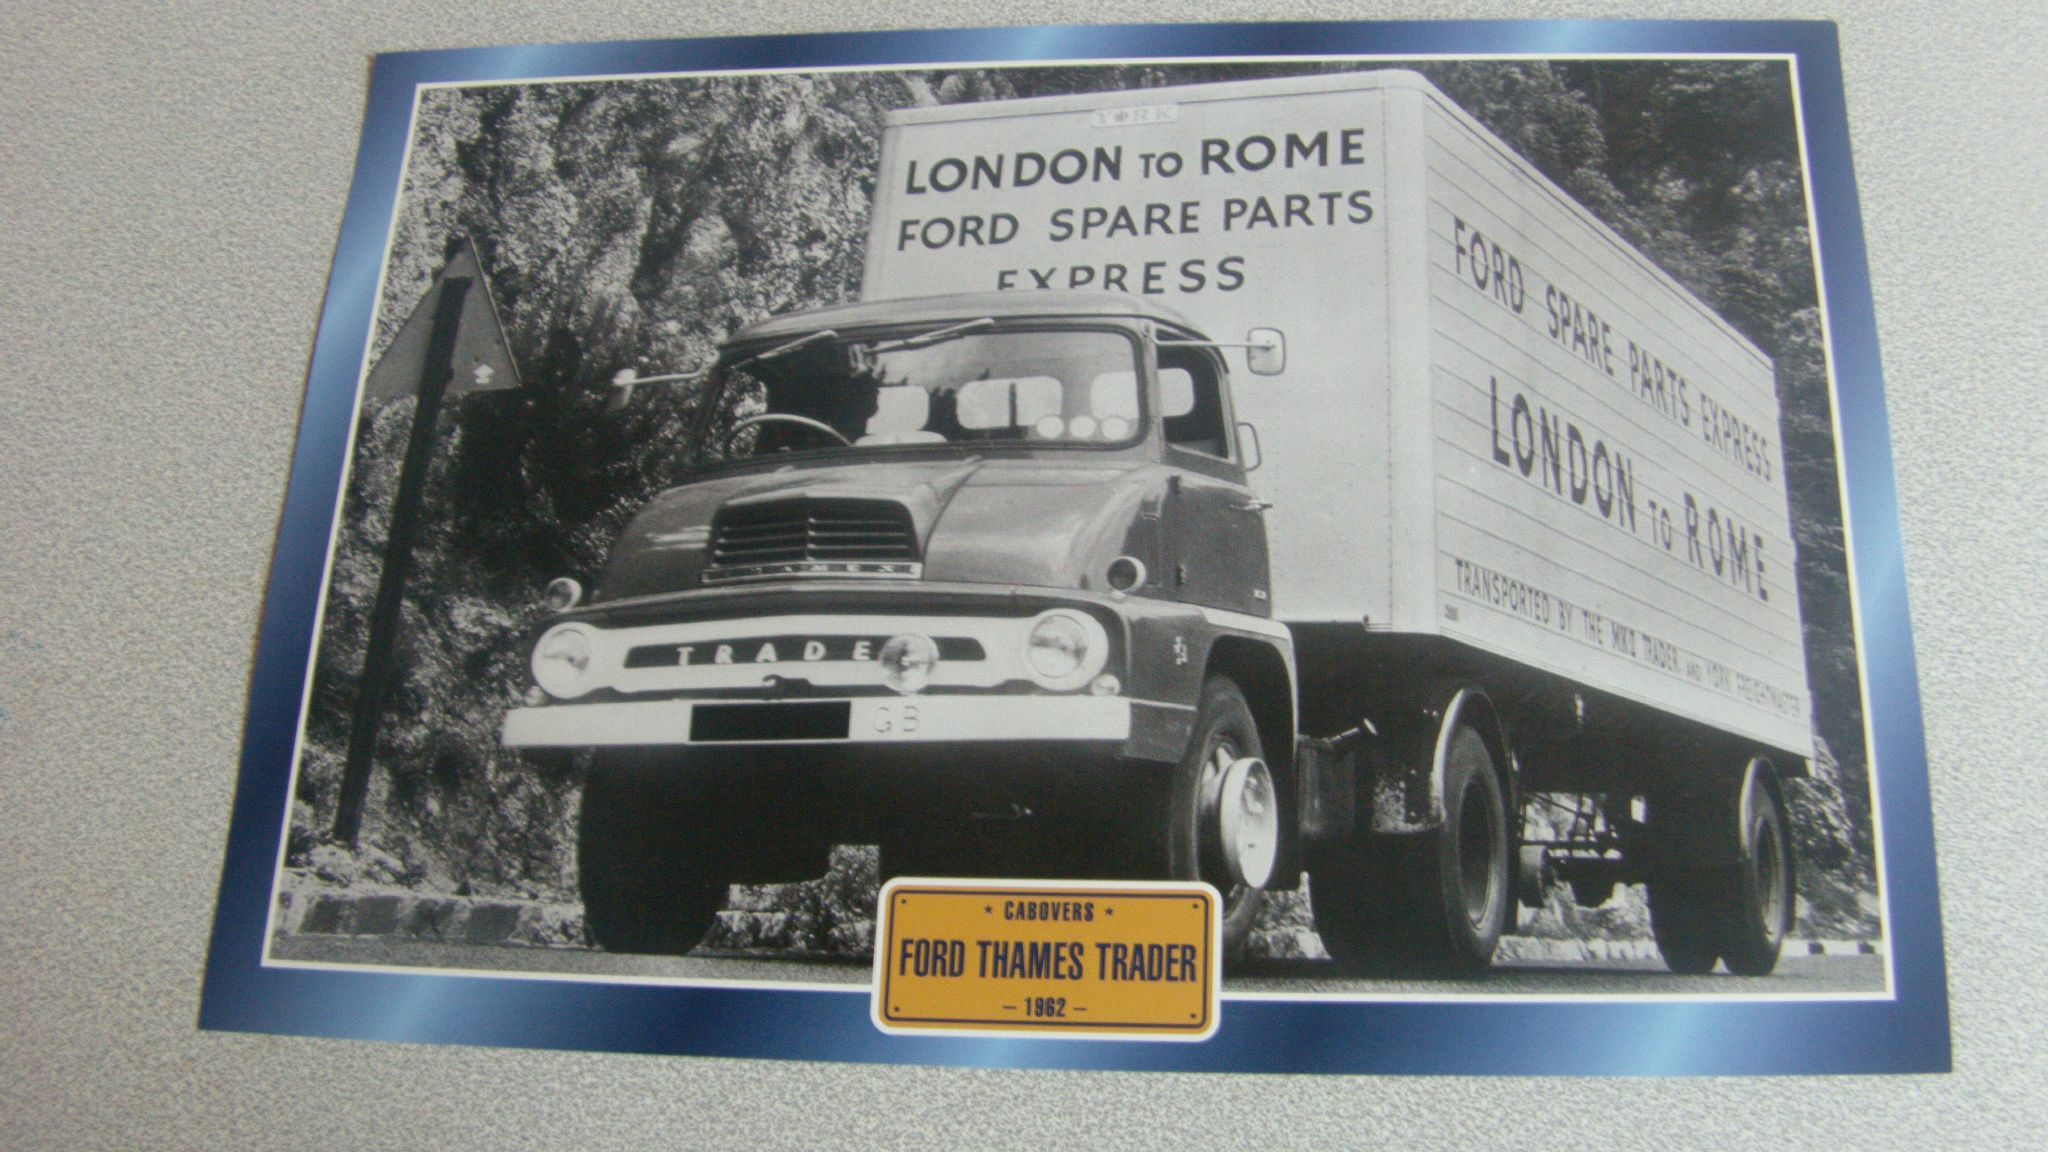 Ford Thames Trader 1962 Truck (Ford spare parts) ITEM Delightful ...